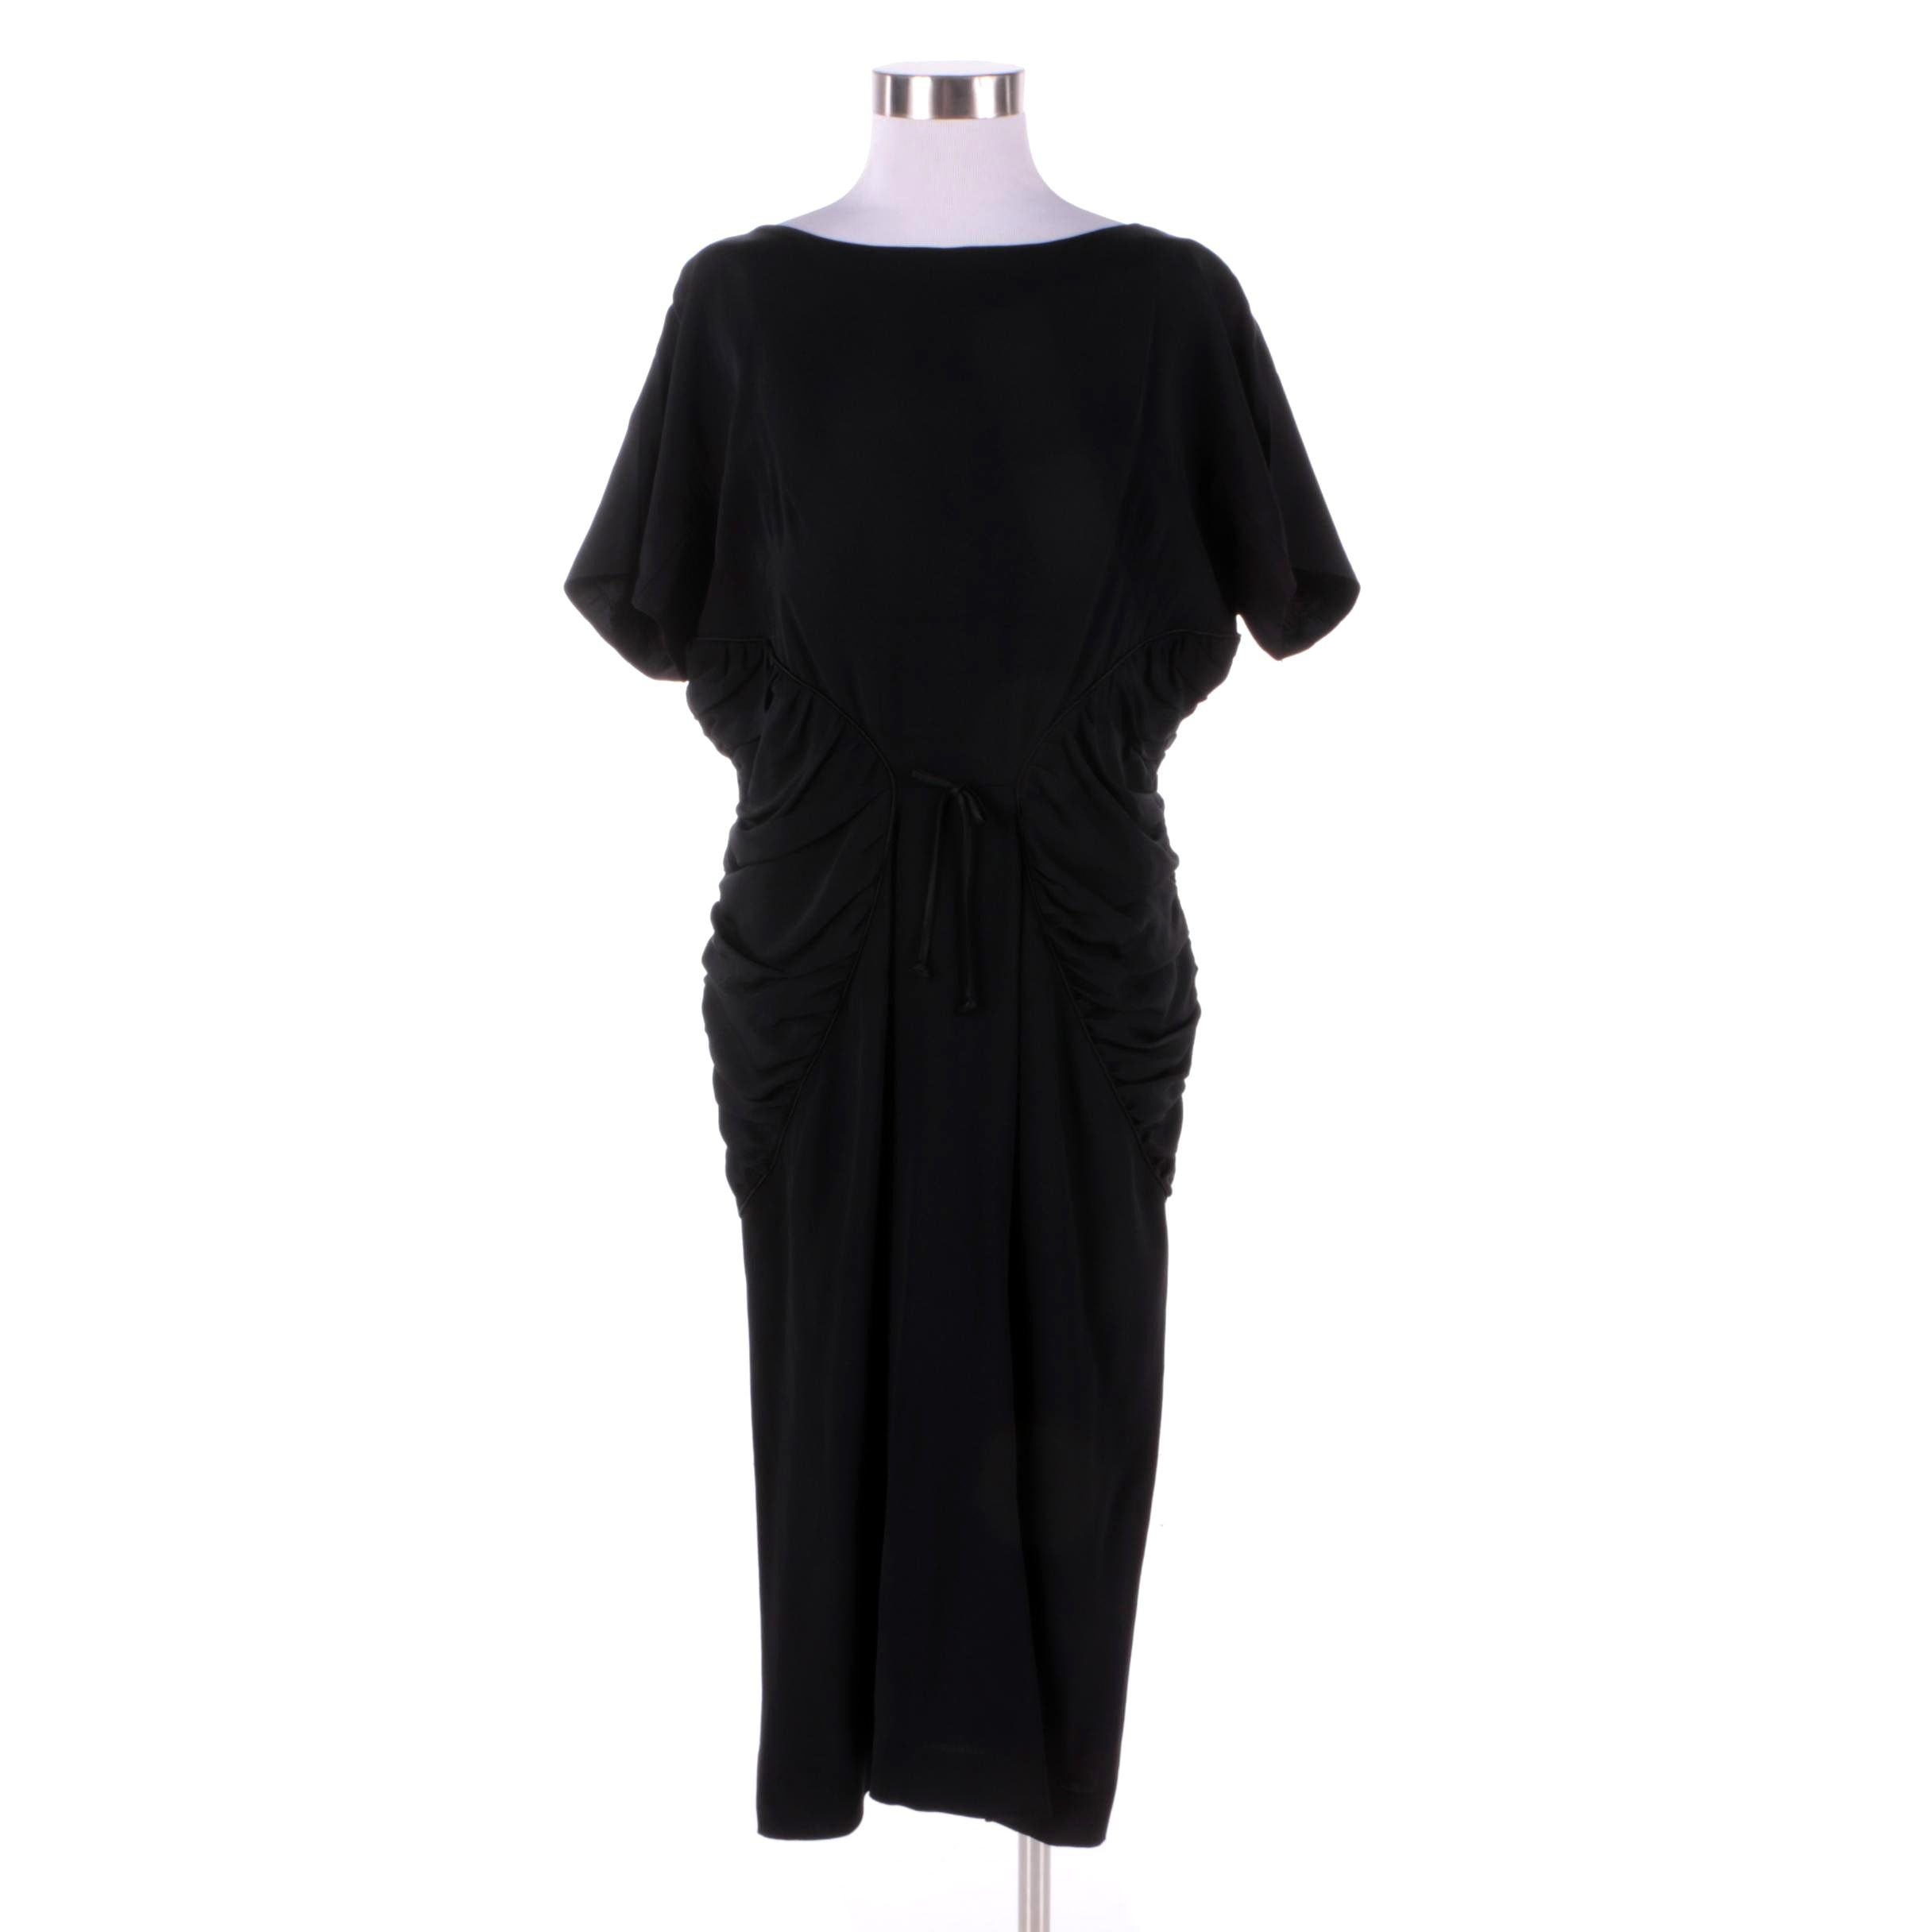 1930s Vintage Black Bias Cut Cocktail Dress with Ruched Sides